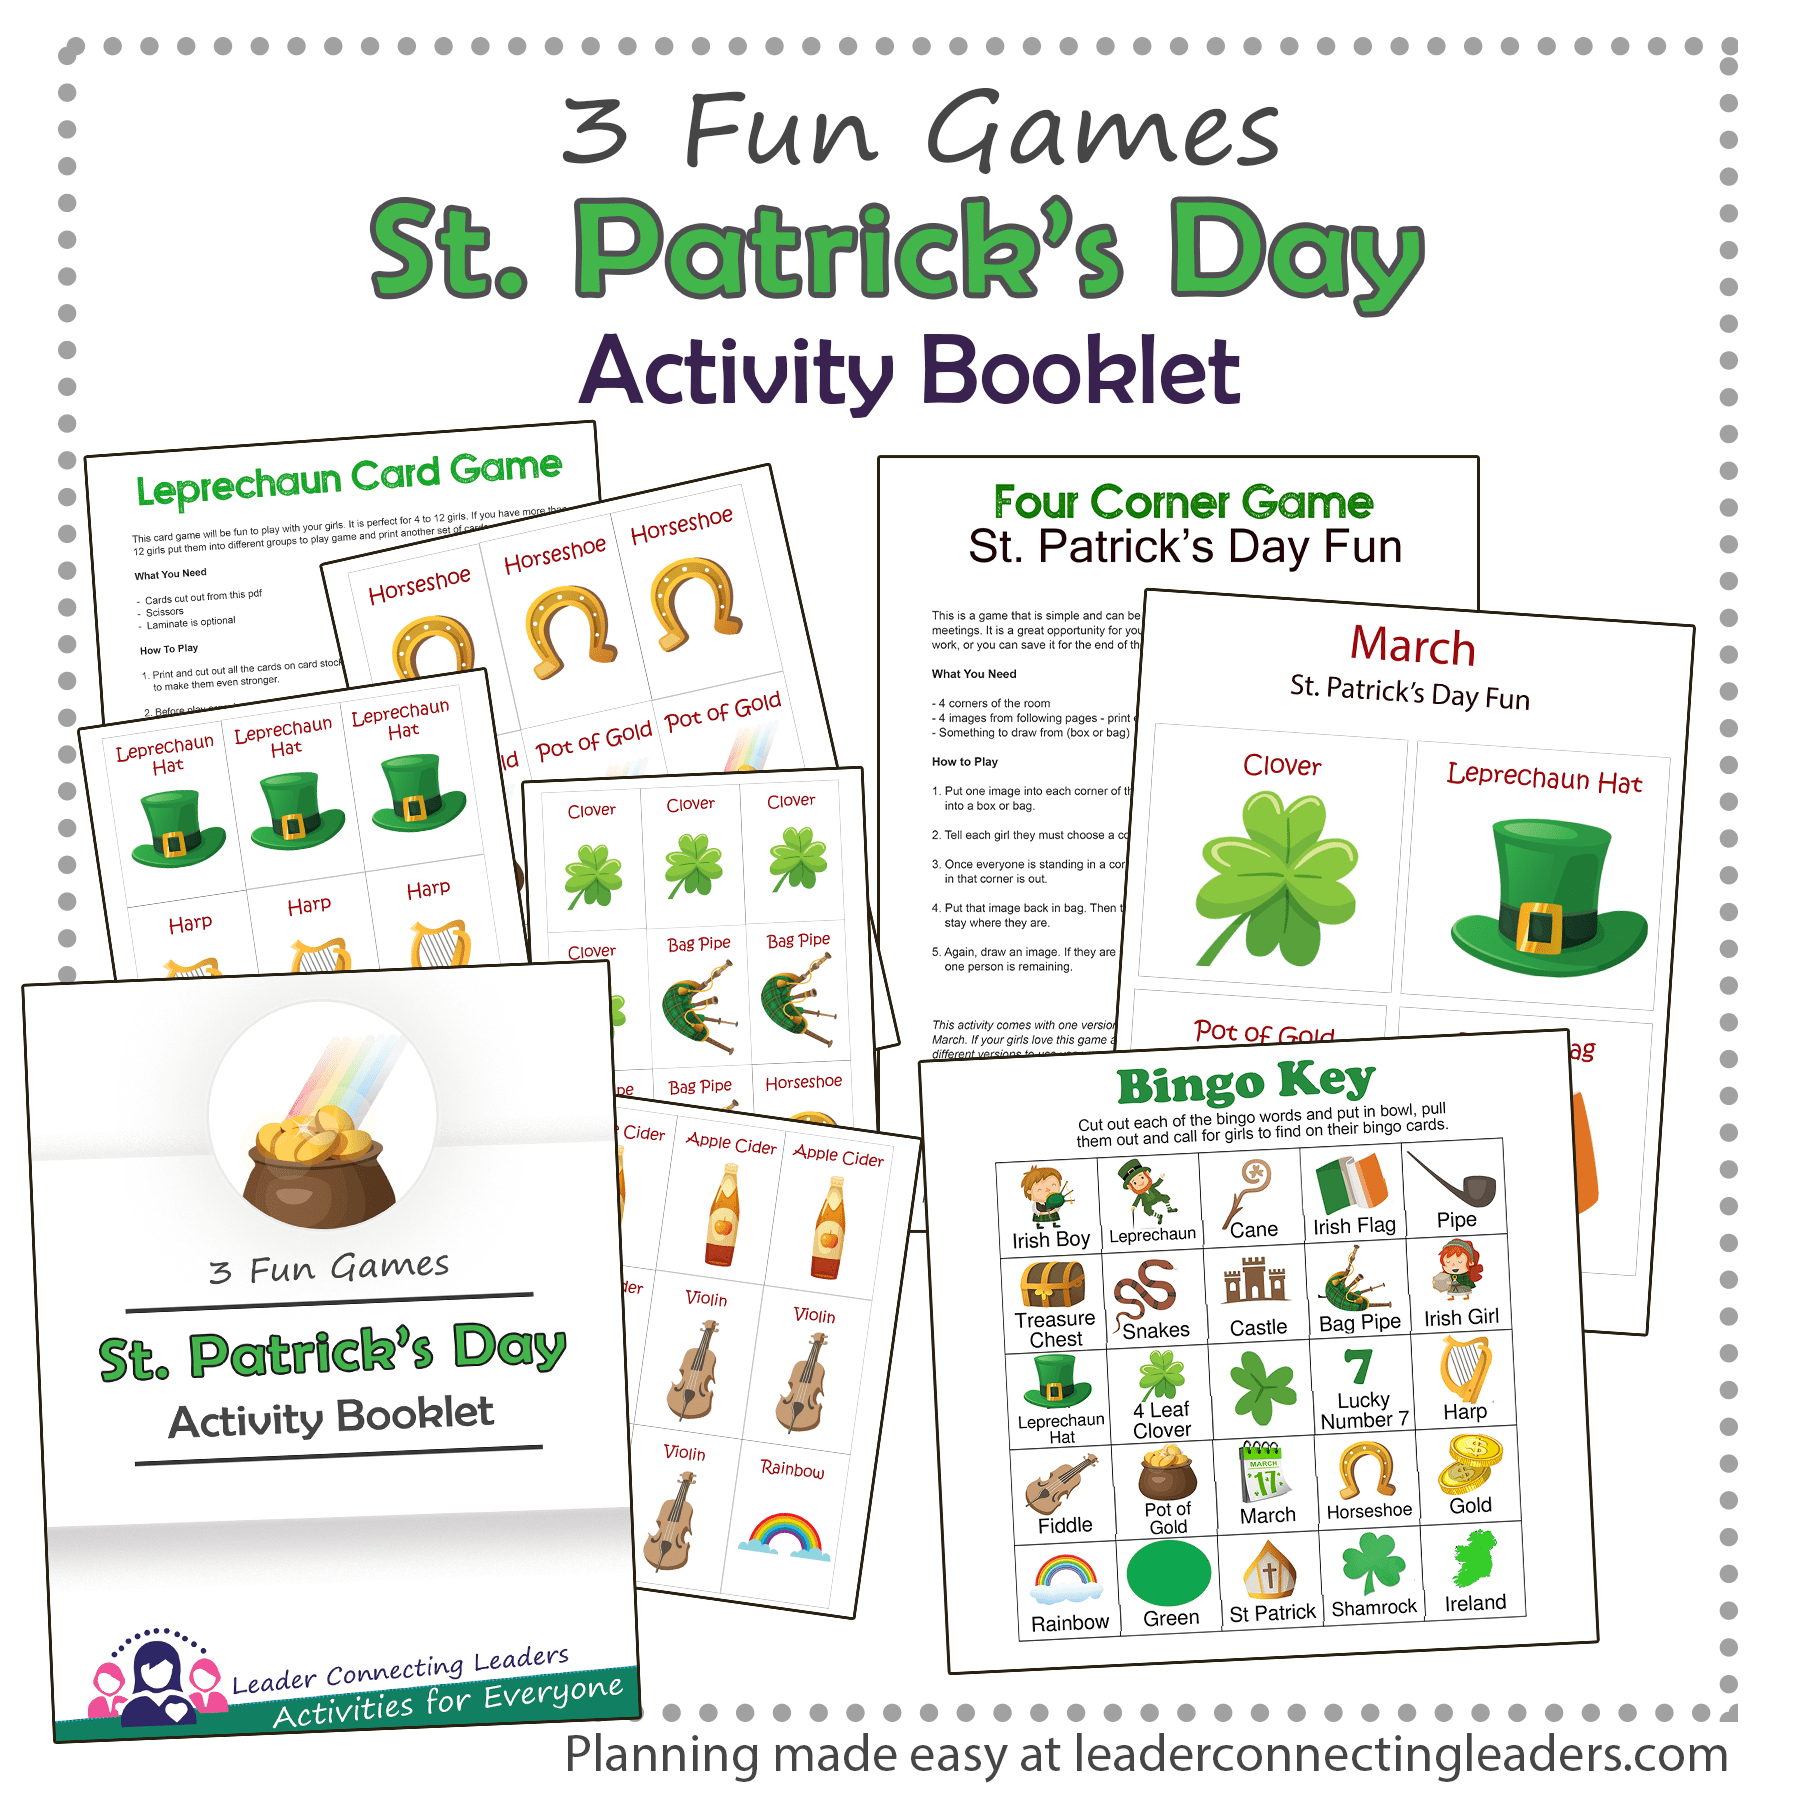 St Patrick's Day Activity Booklet